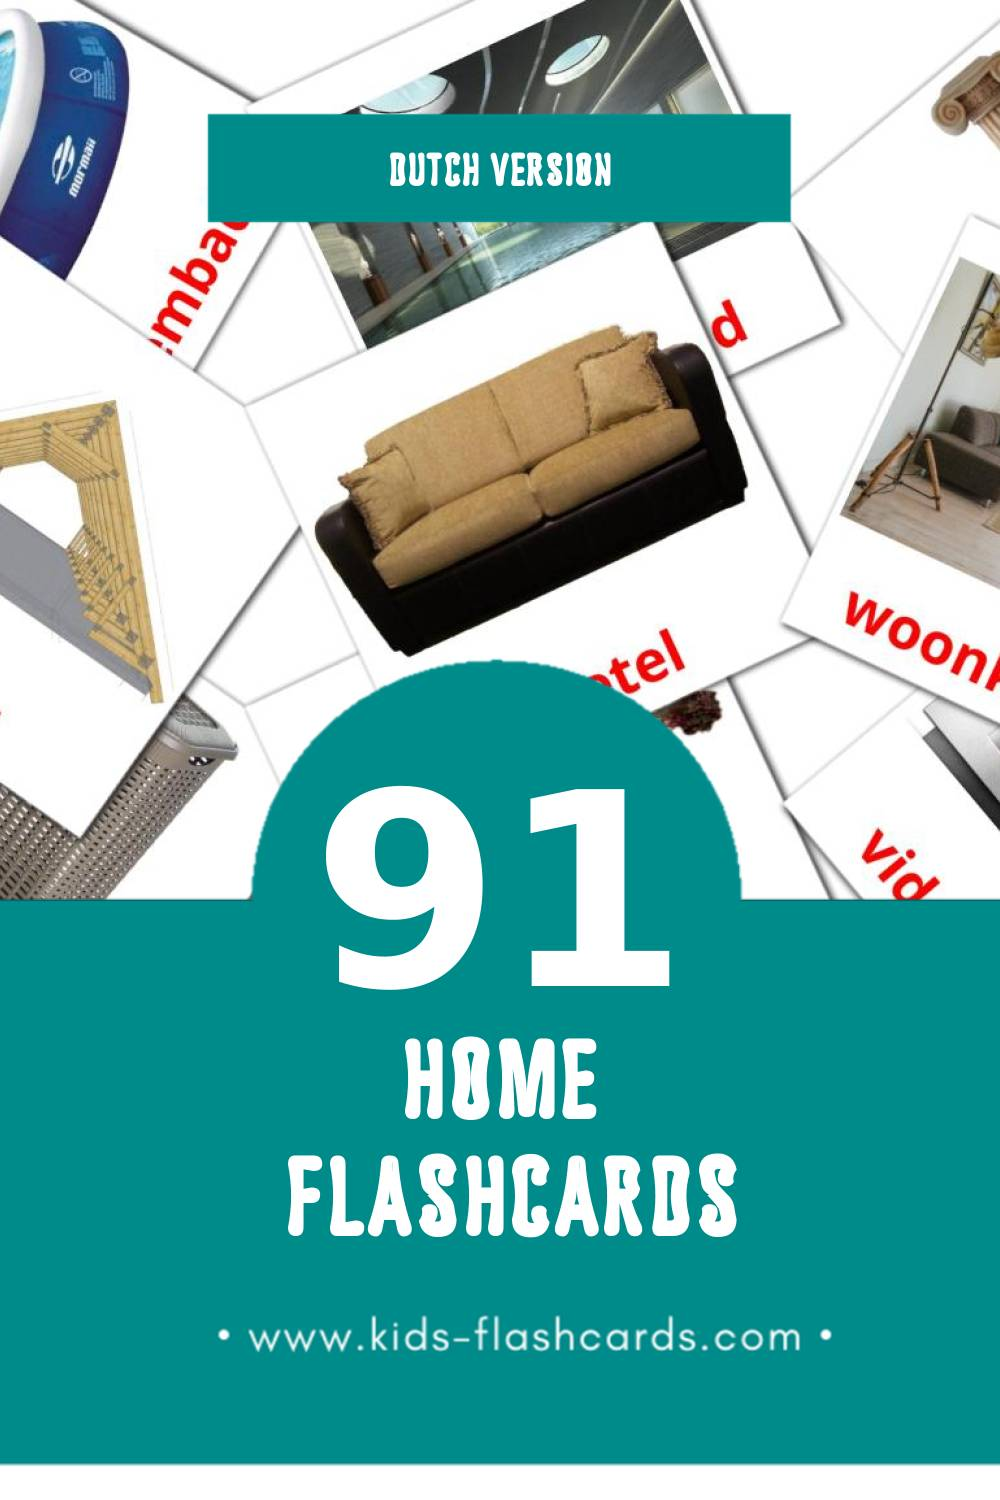 Visual Huis Flashcards for Toddlers (74 cards in Dutch)